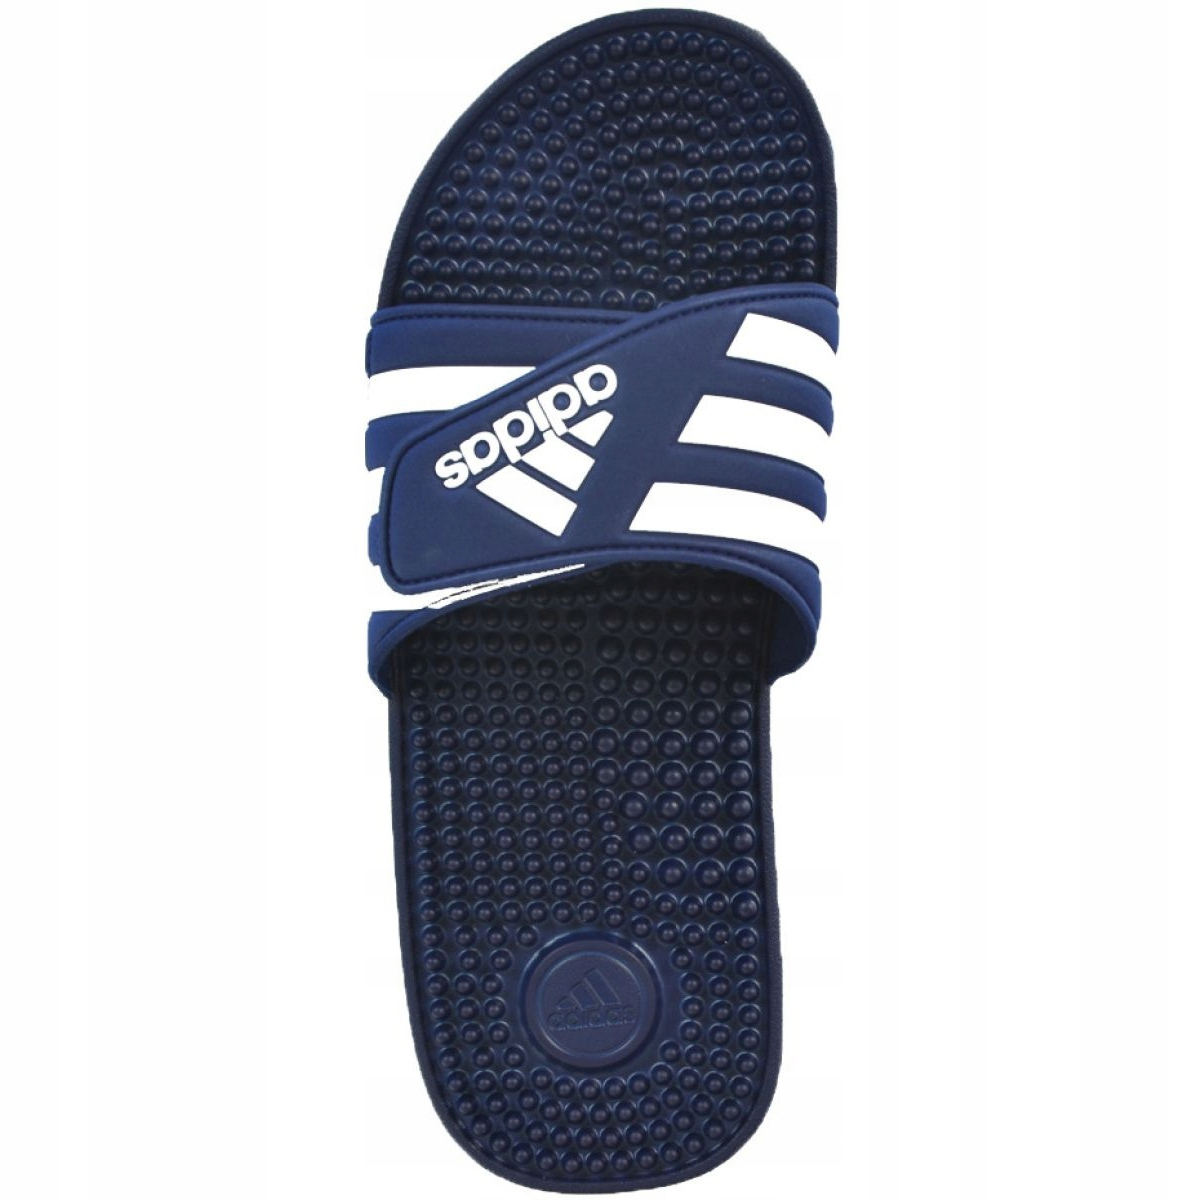 Adidas M F35579 slippers